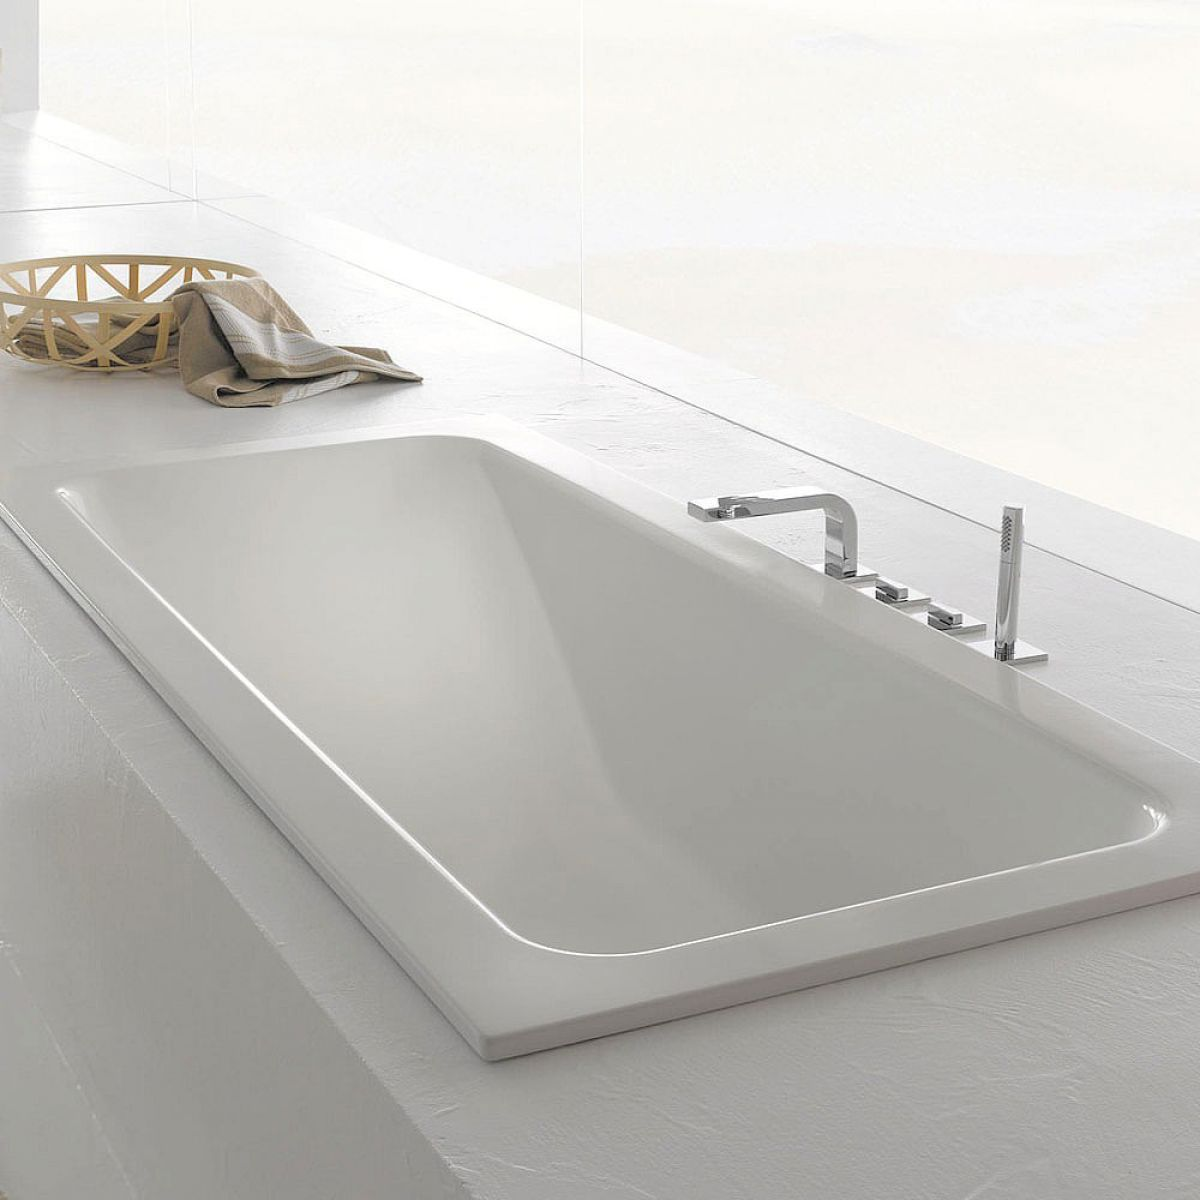 image example of a steel bath